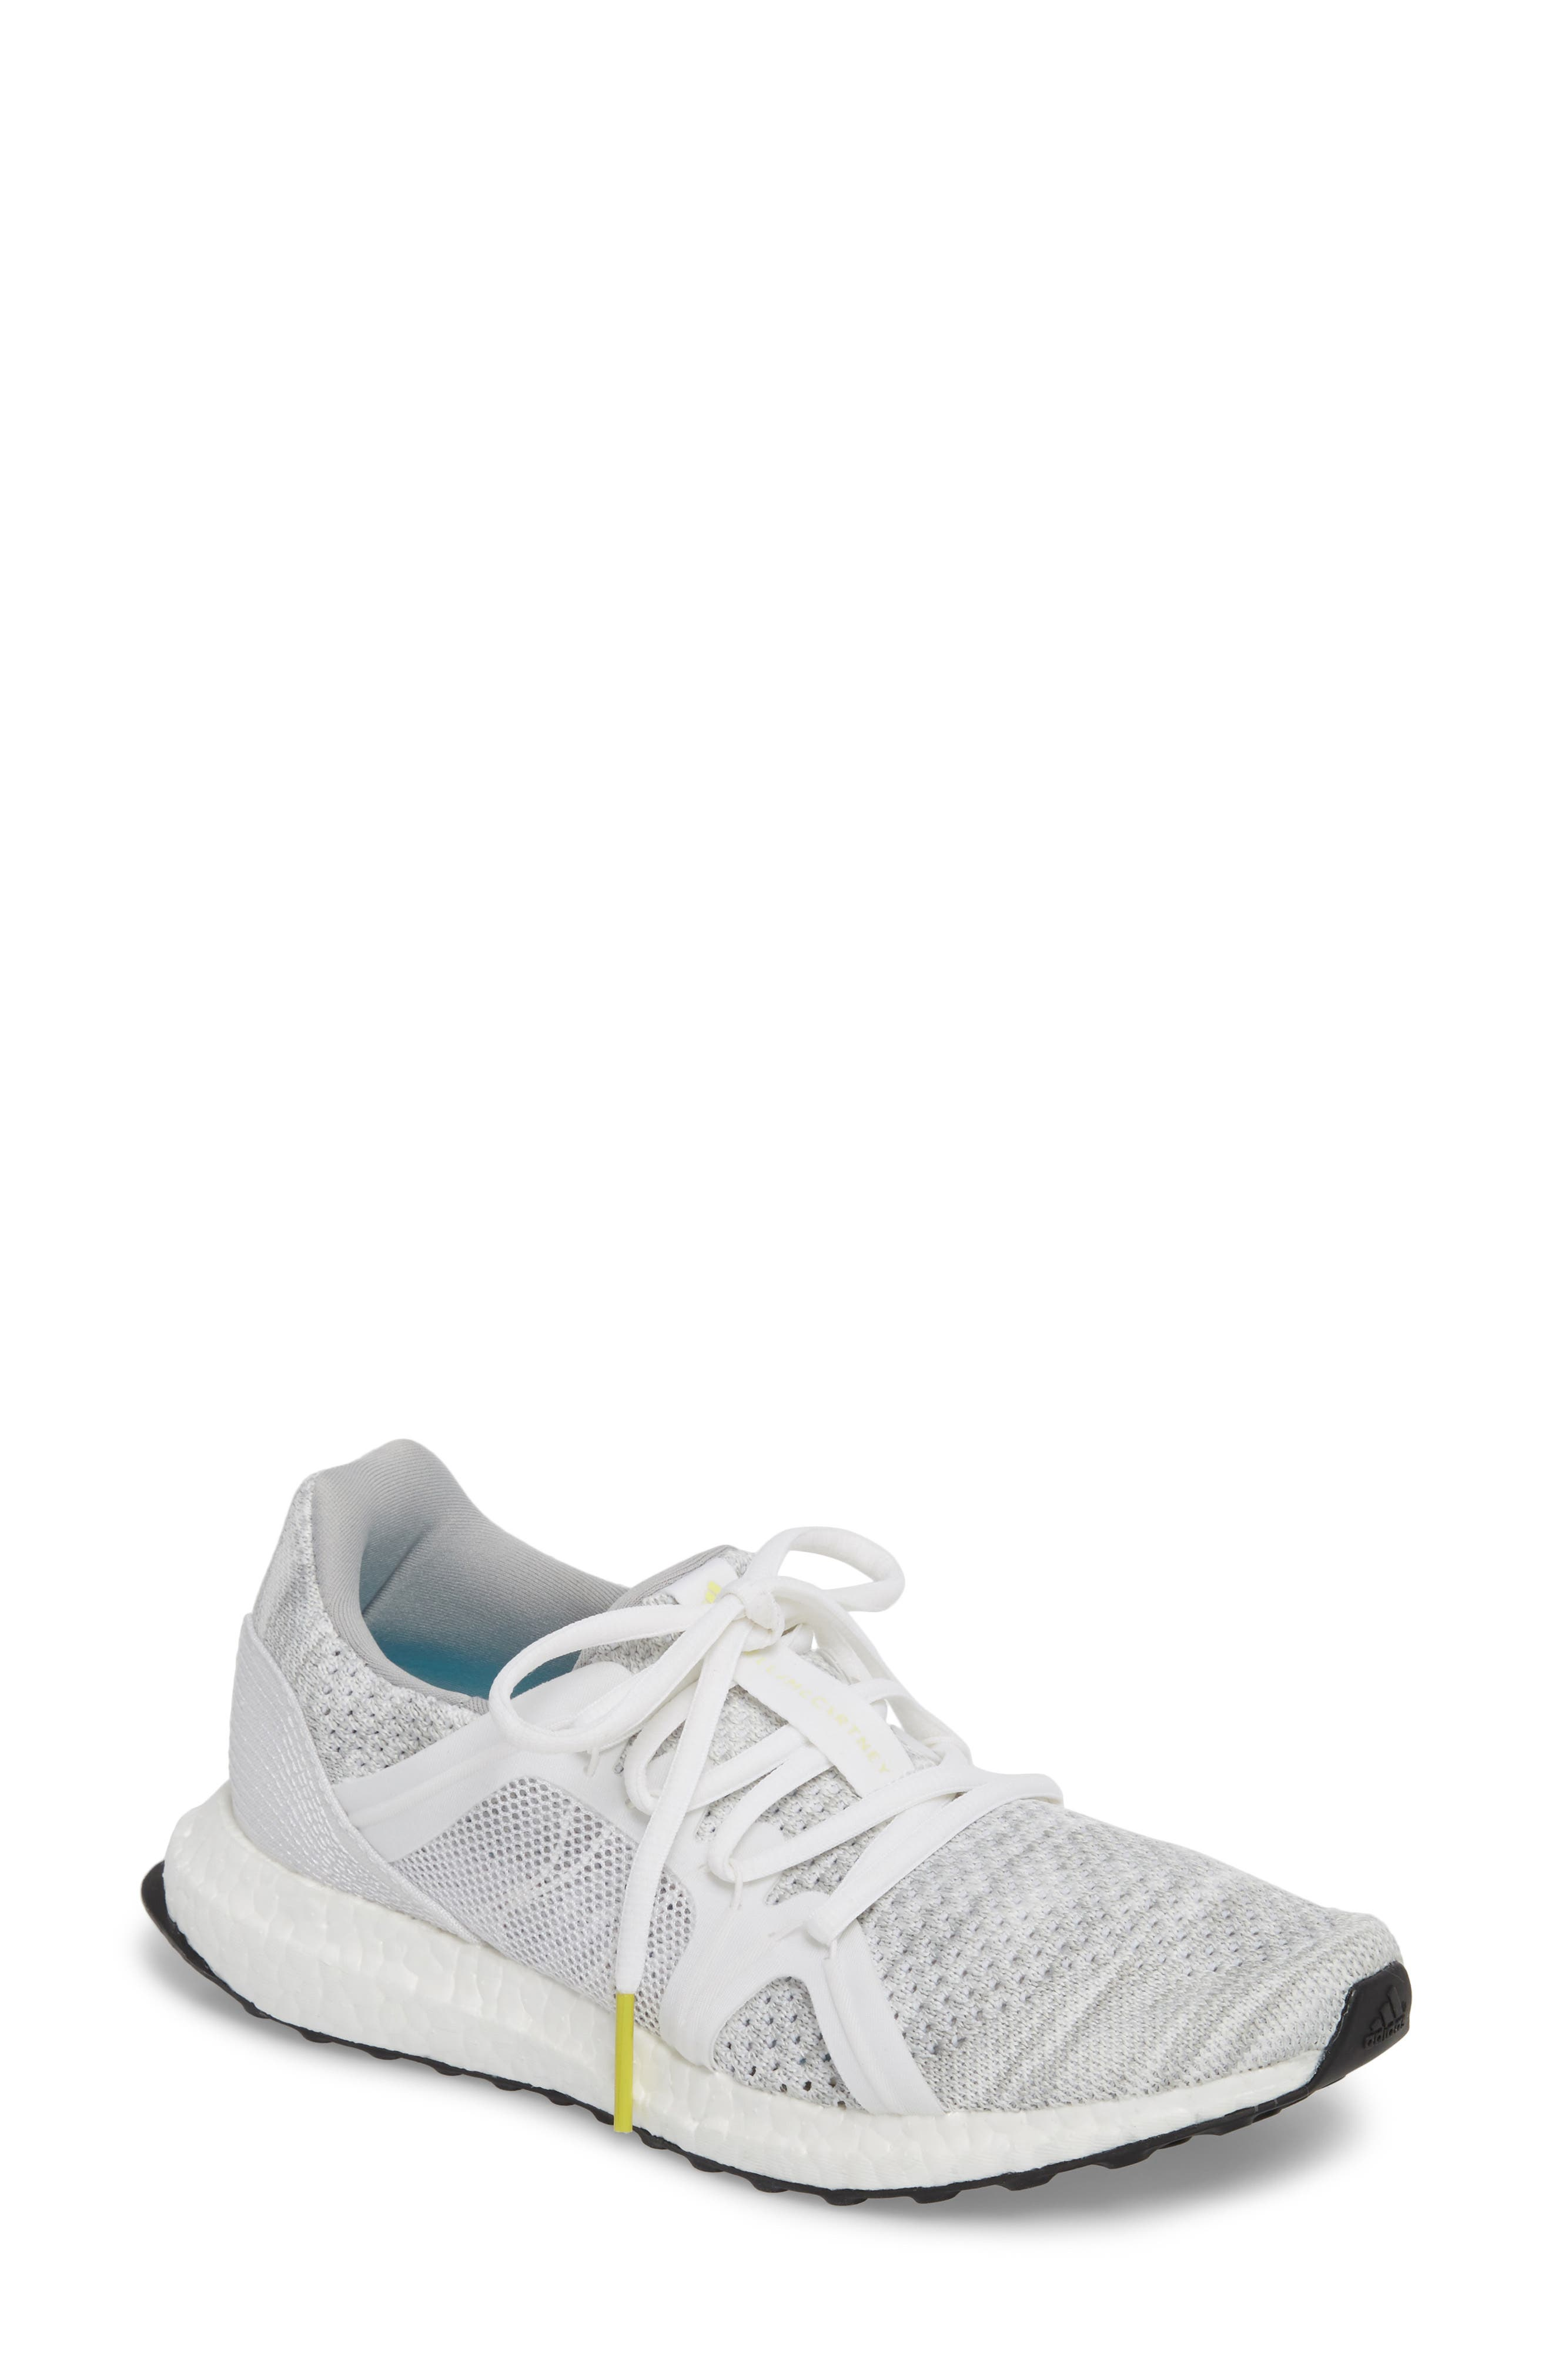 by Stella McCartney UltraBoost x Parley Running Shoe,                         Main,                         color, STONE/ CORE WHITE/ MIRROR BLUE